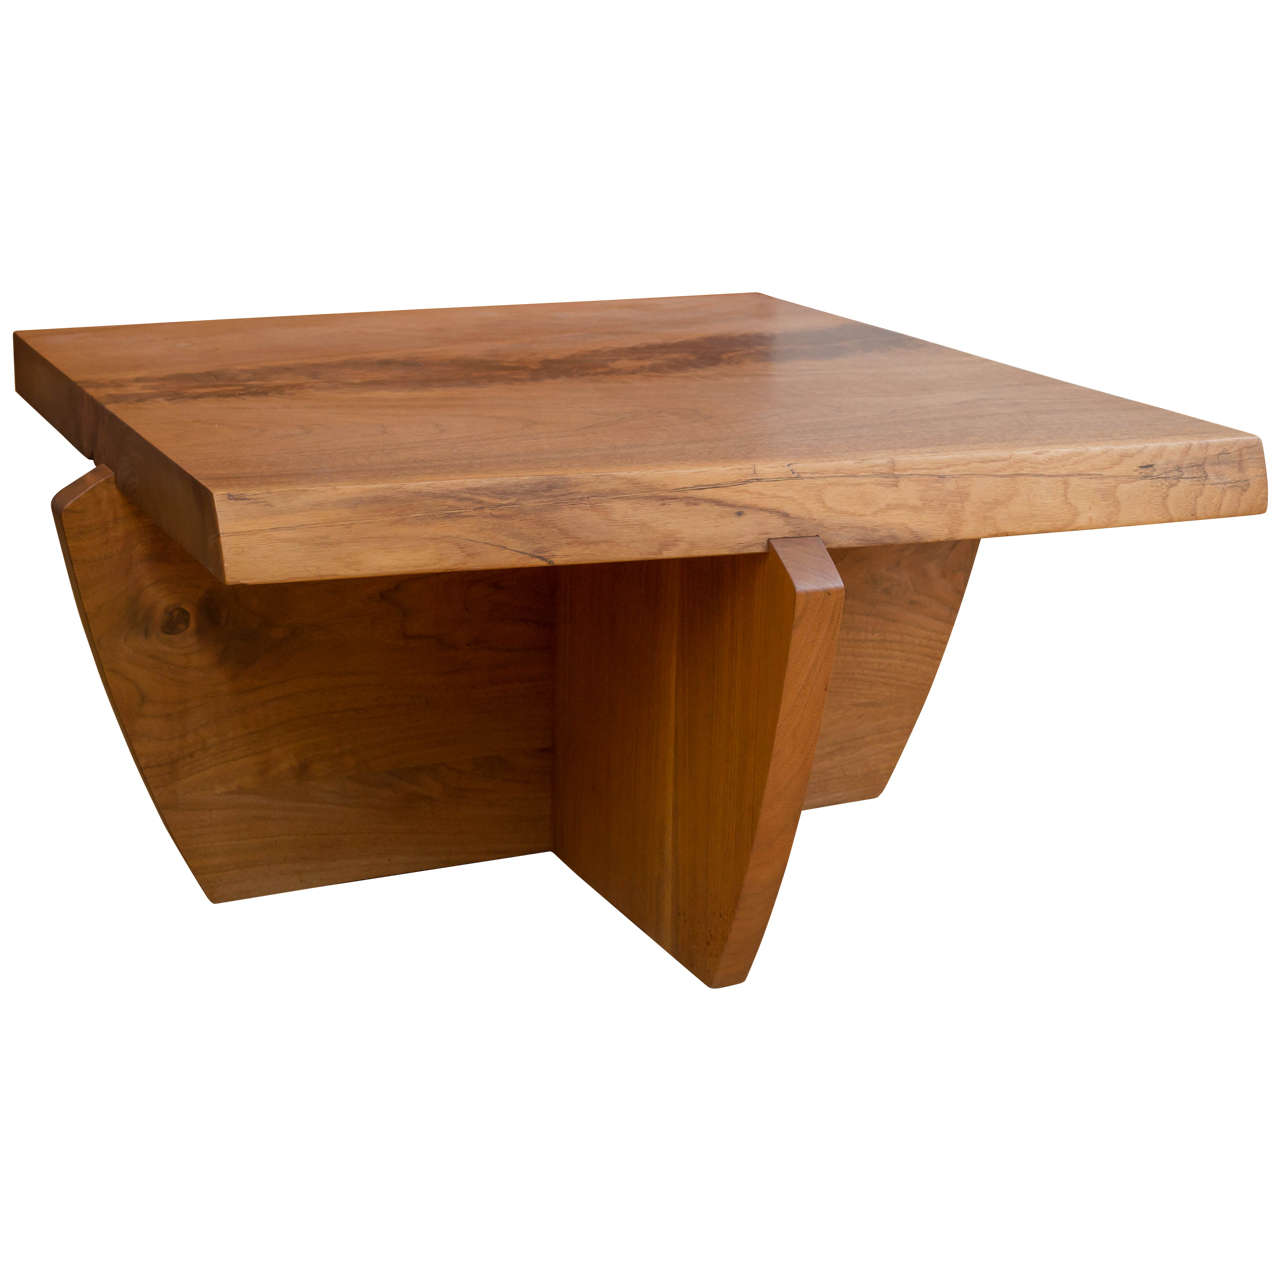 Ordinaire George Nakashima Coffee Table For Sale